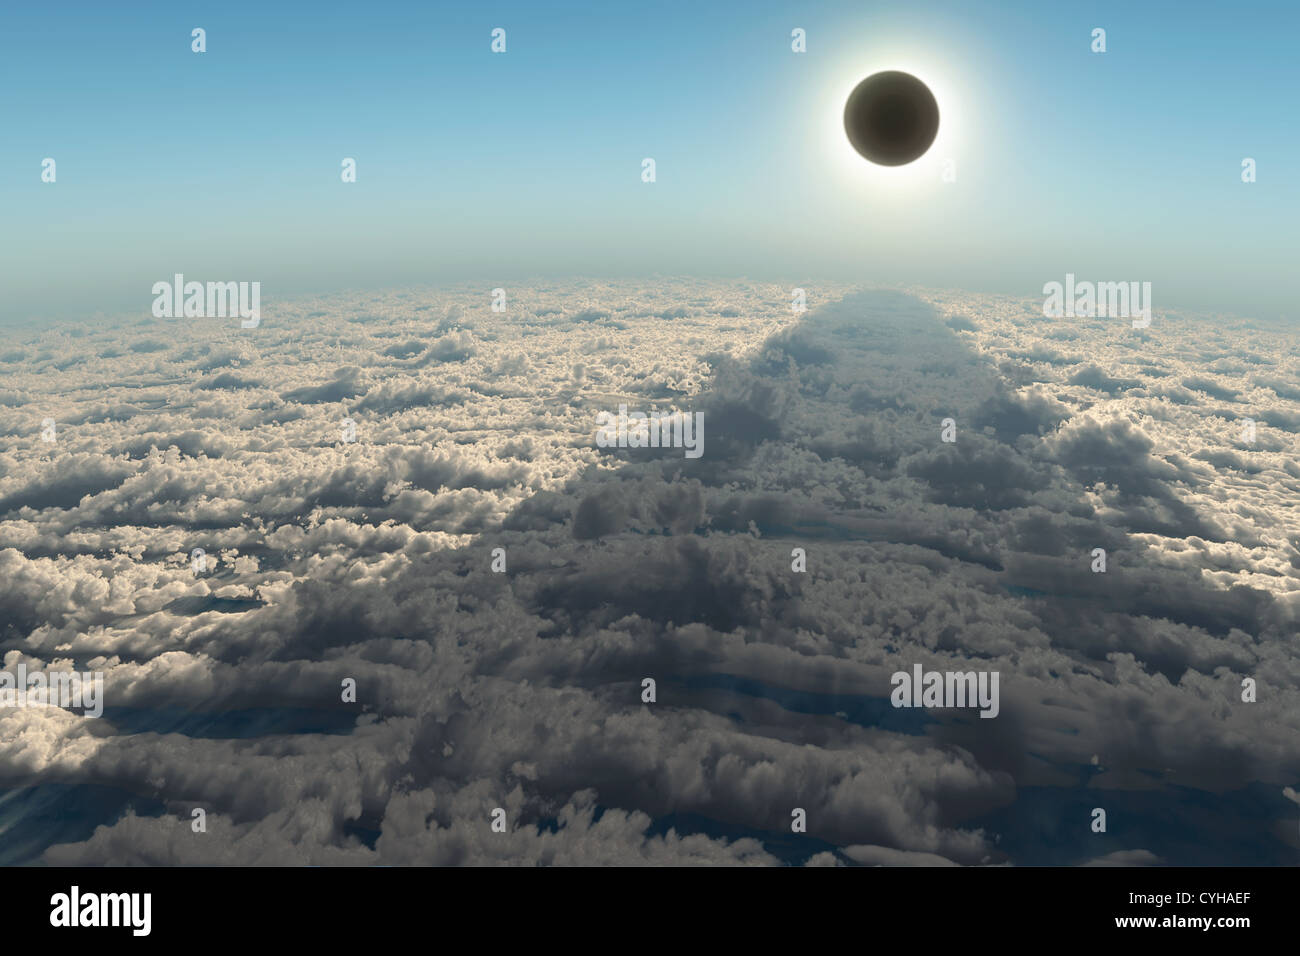 solar eclipse, aerial view - Stock Image